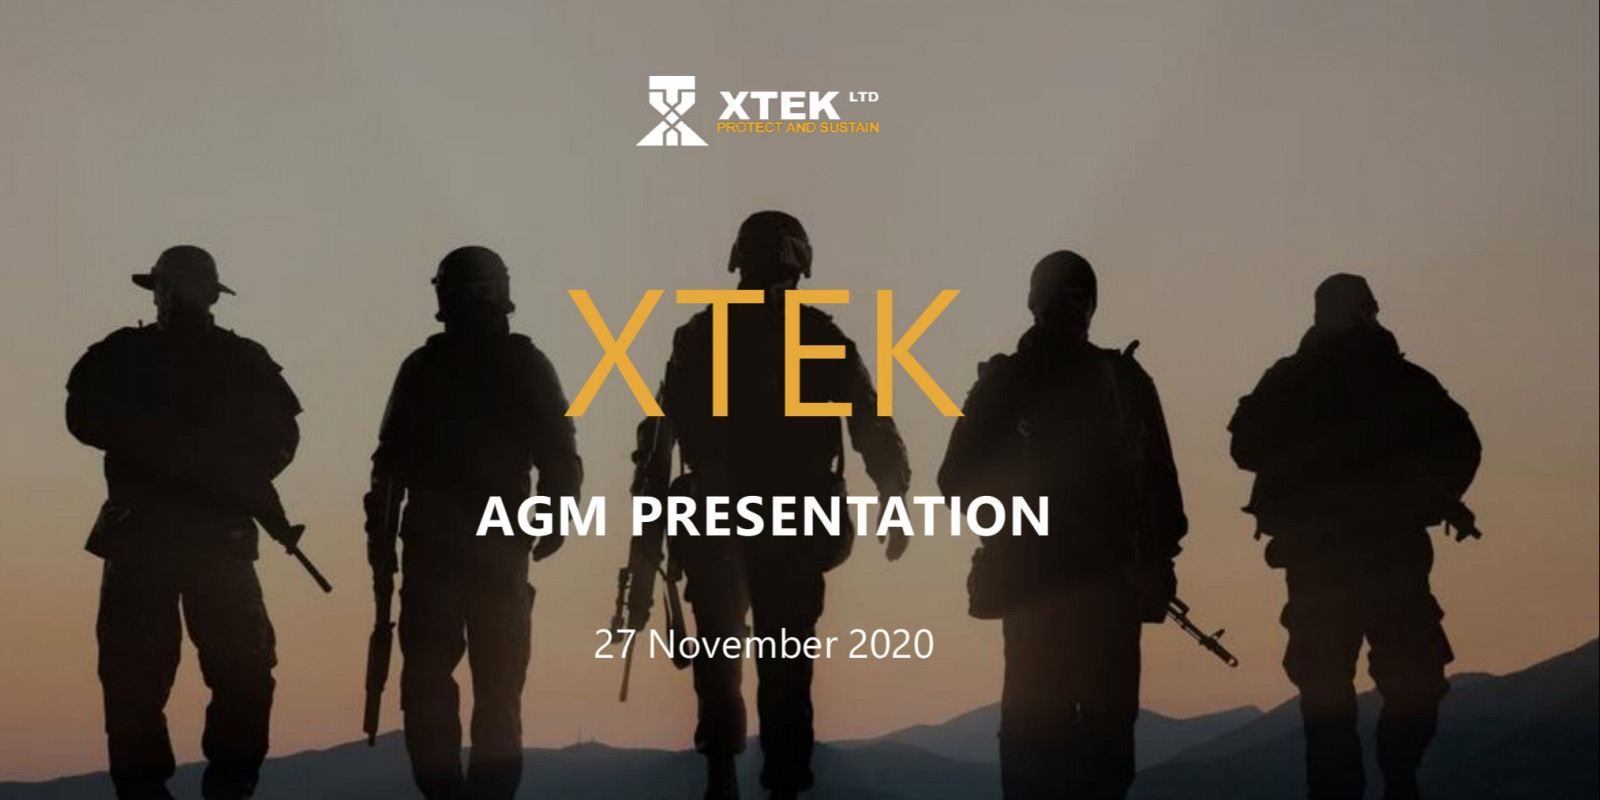 Xtek's share price strong on AGM update